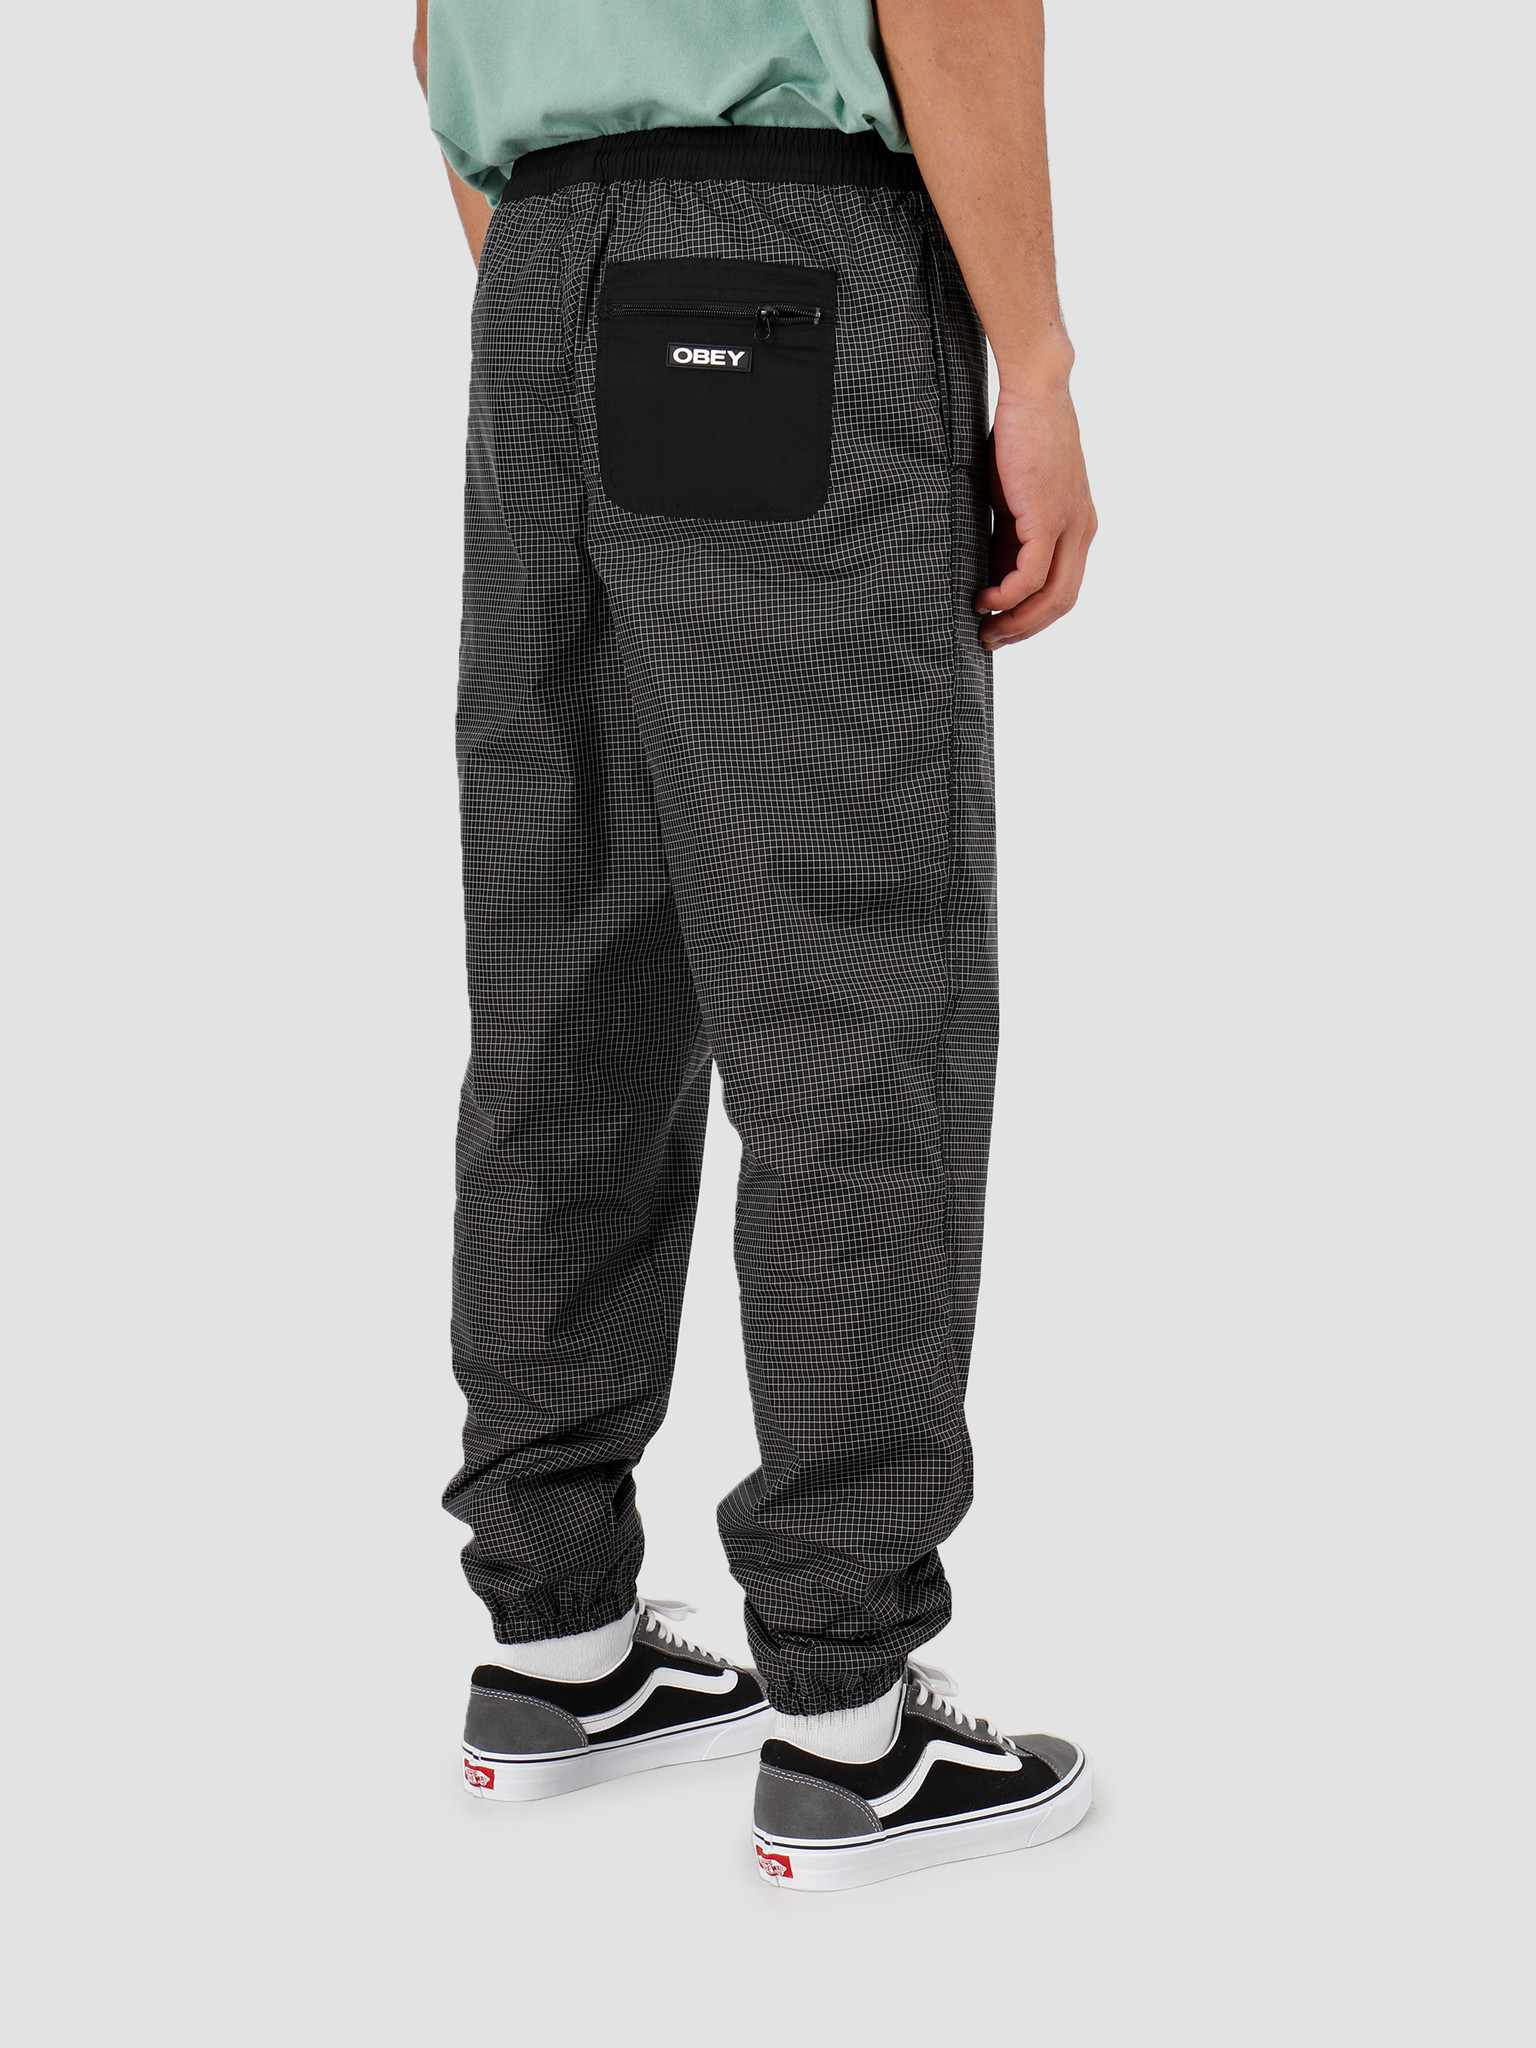 Obey Obey Easy Nore Pant Black 142020144-BLK